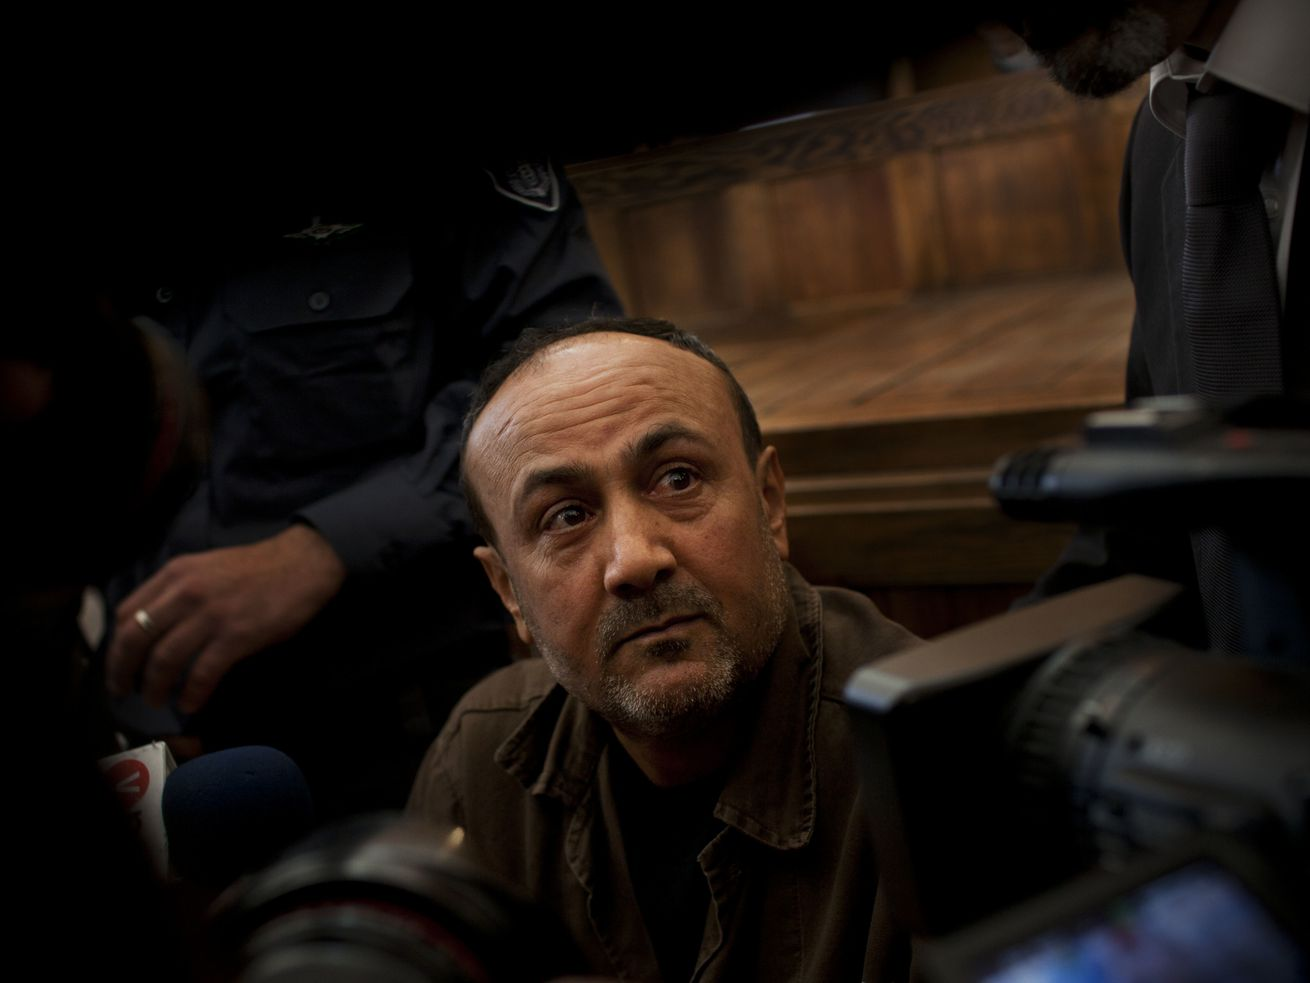 In this file photo taken Jan. 25, 2012, senior Fatah leader Marwan Barghouti appears at Jerusalem's court. Supporters of the popular Palestinian leader jailed by Israel say he will back his own parliamentary list in May elections.